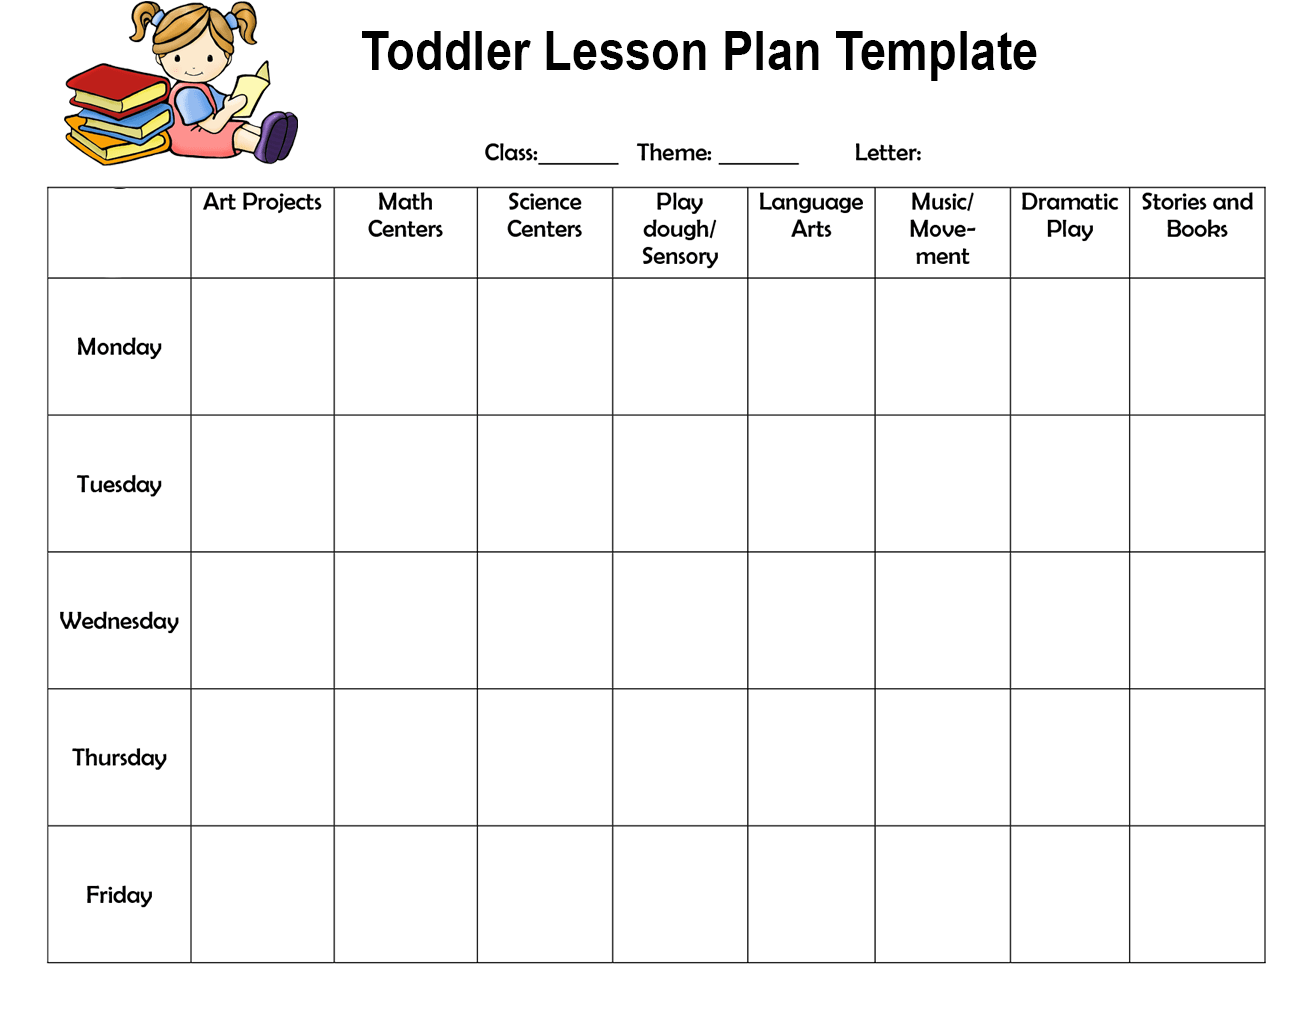 Toddler Lesson Plan Template-min